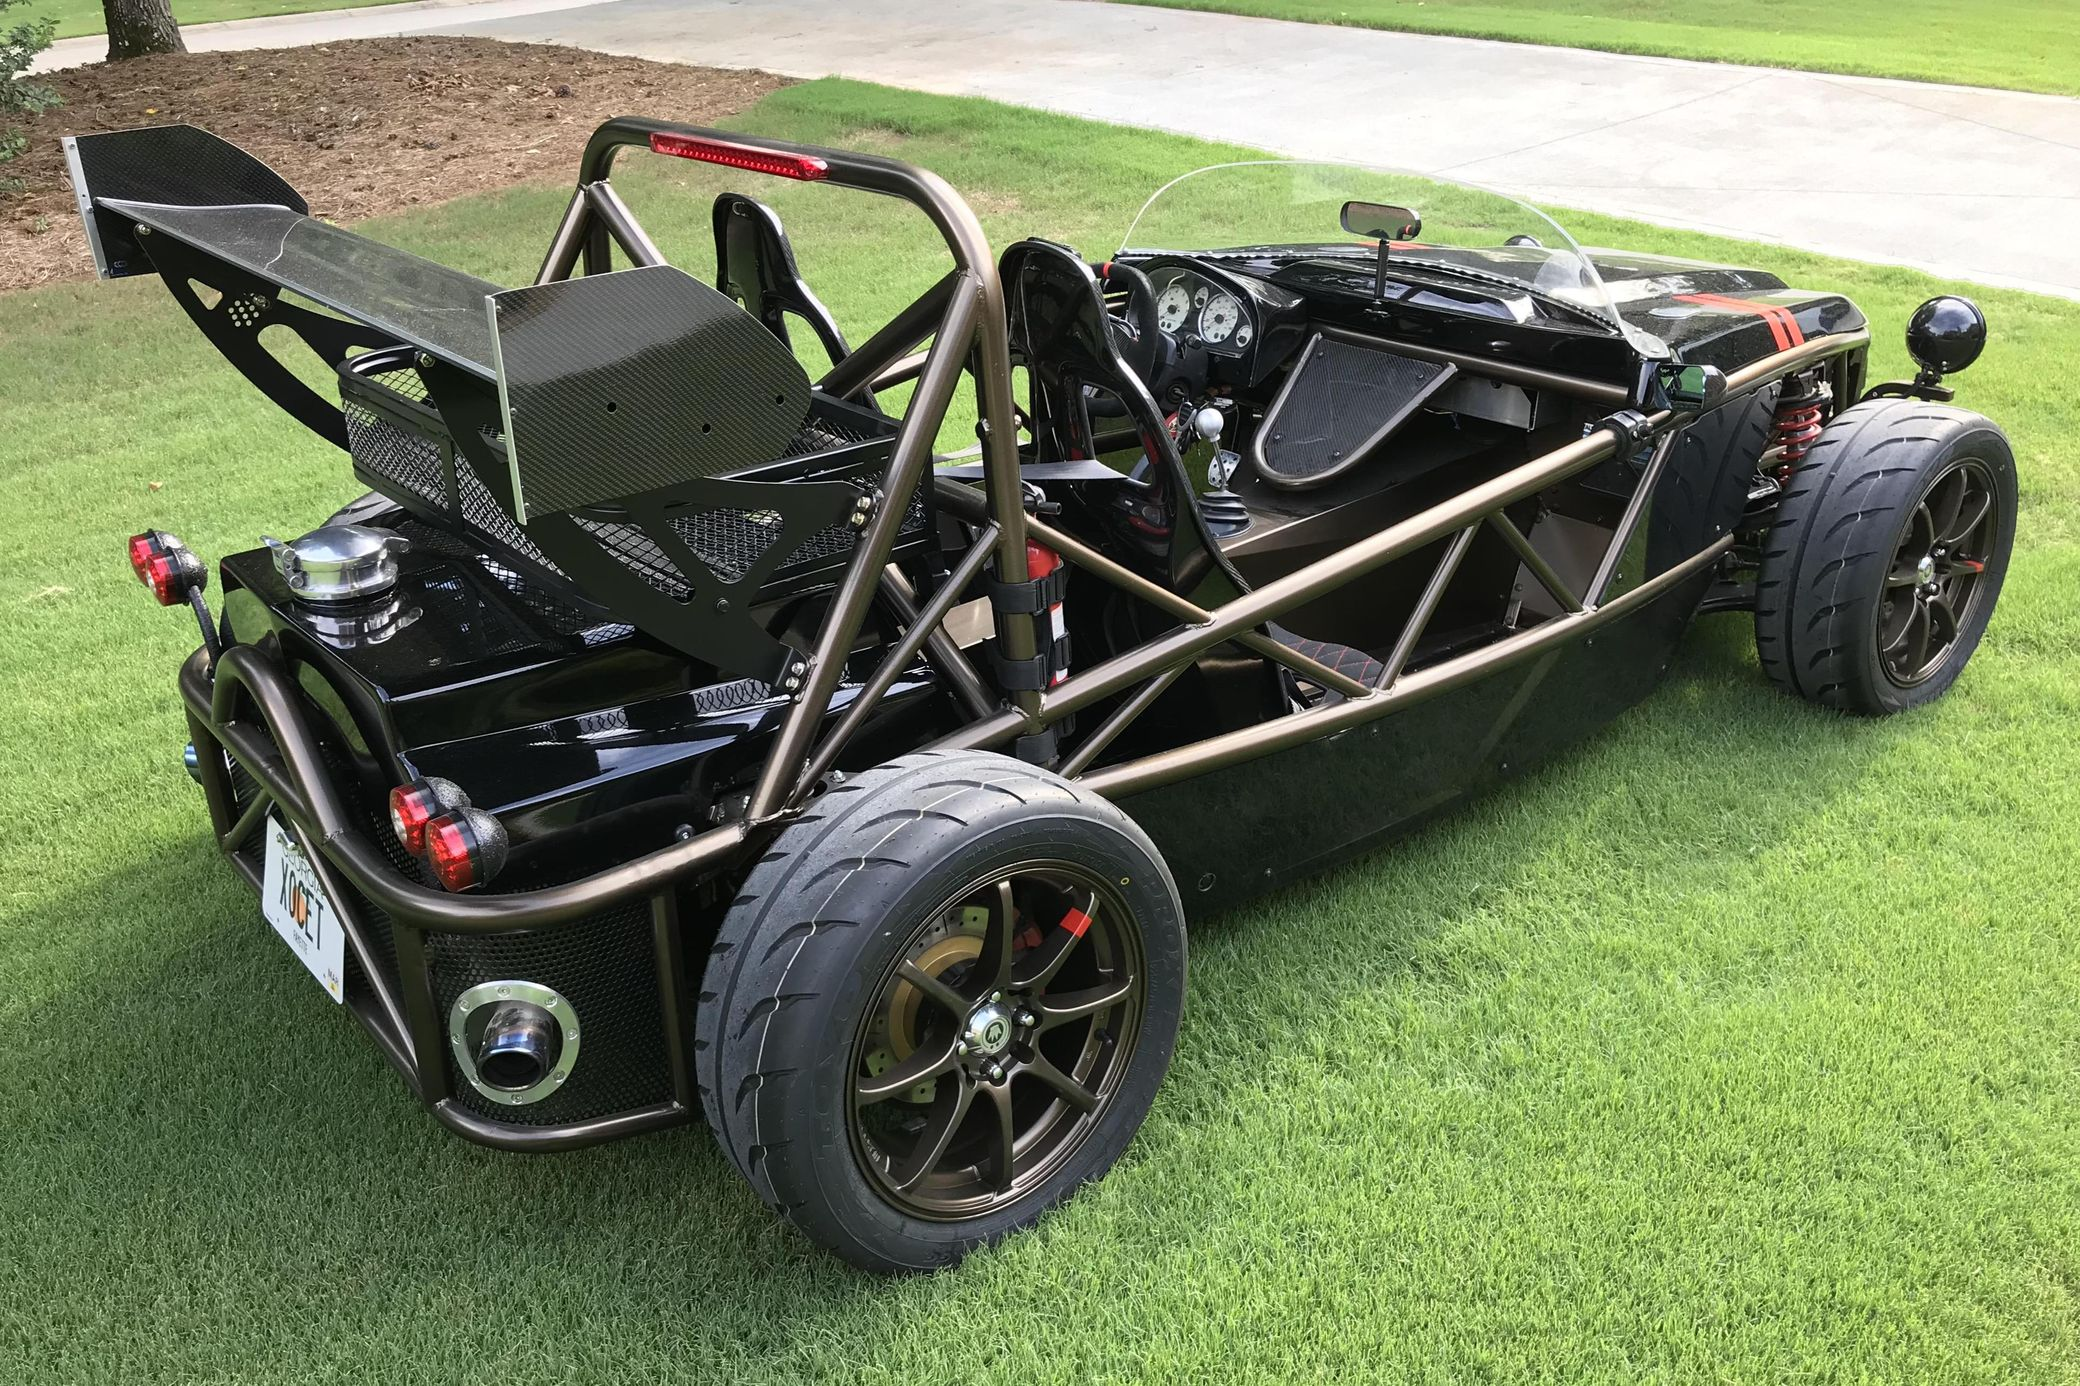 The Exomotive Exocet sports car pictured here was built three years ago based on the 2001 Mazda MX-5 Miata chassis, although you will be forgiven for not recognizing the donor anymore.